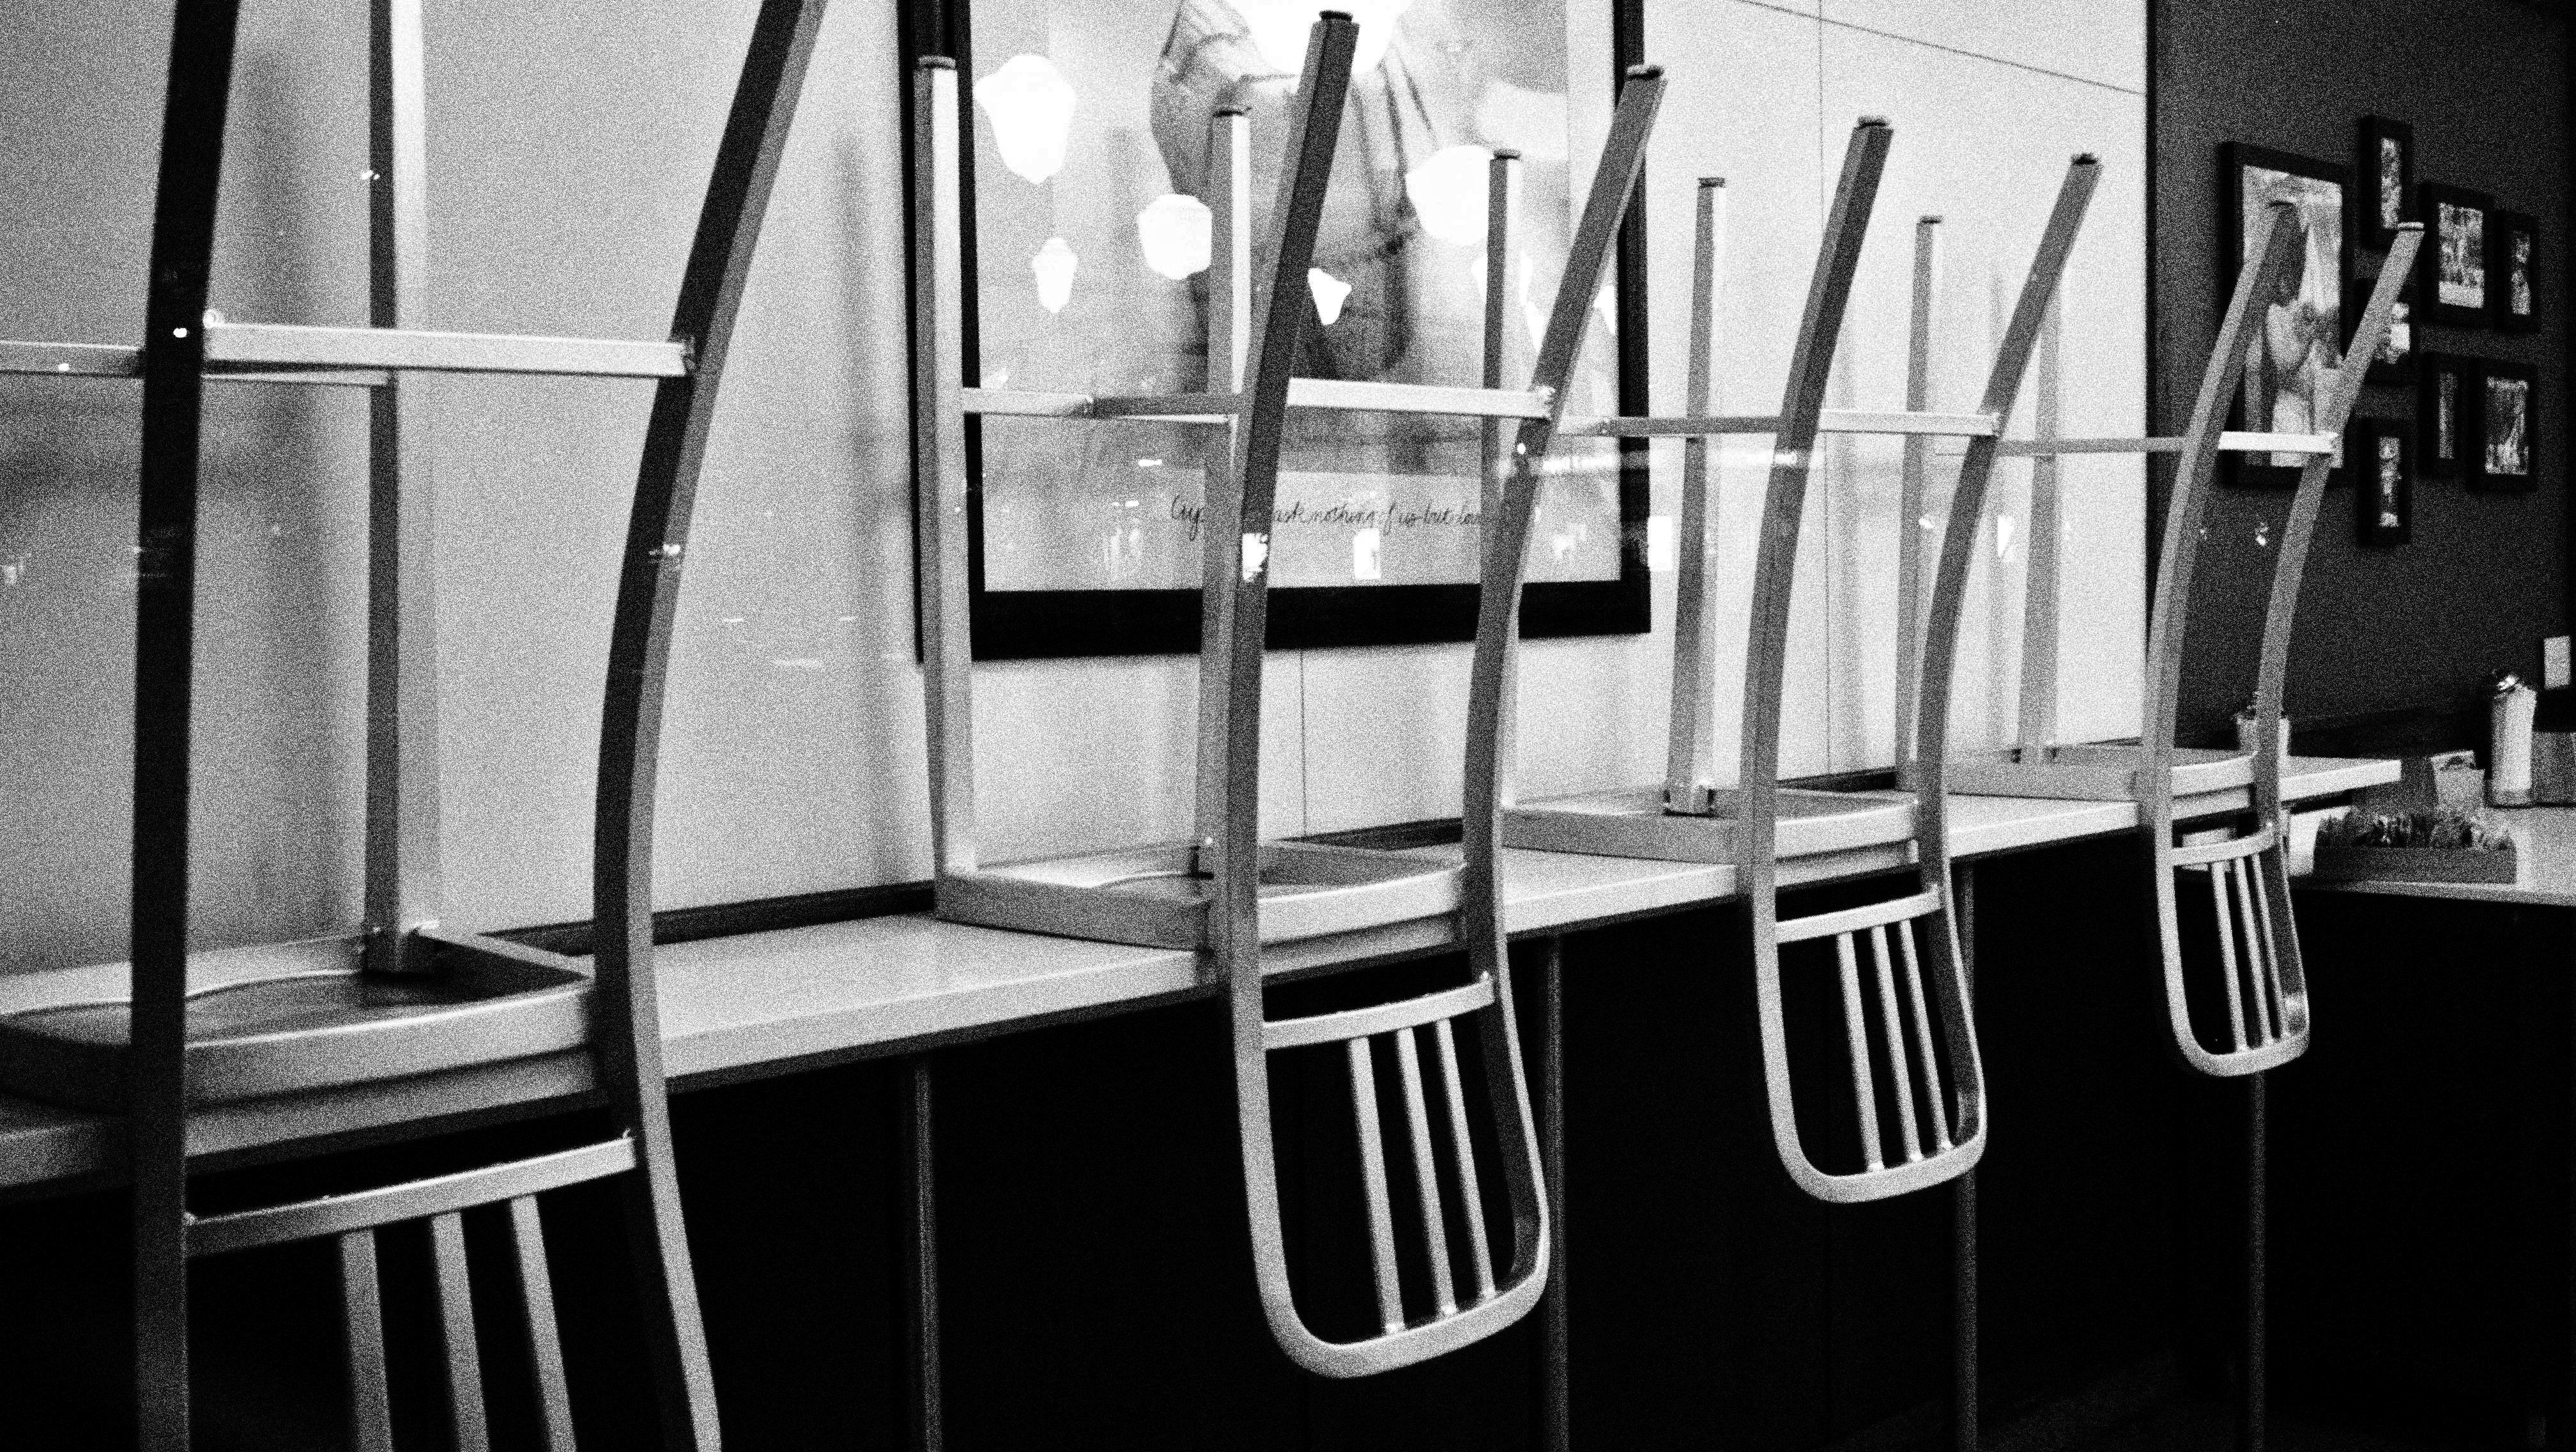 chair rail upside down feet covers day 324 the chairs that no one sits in maria giacchino